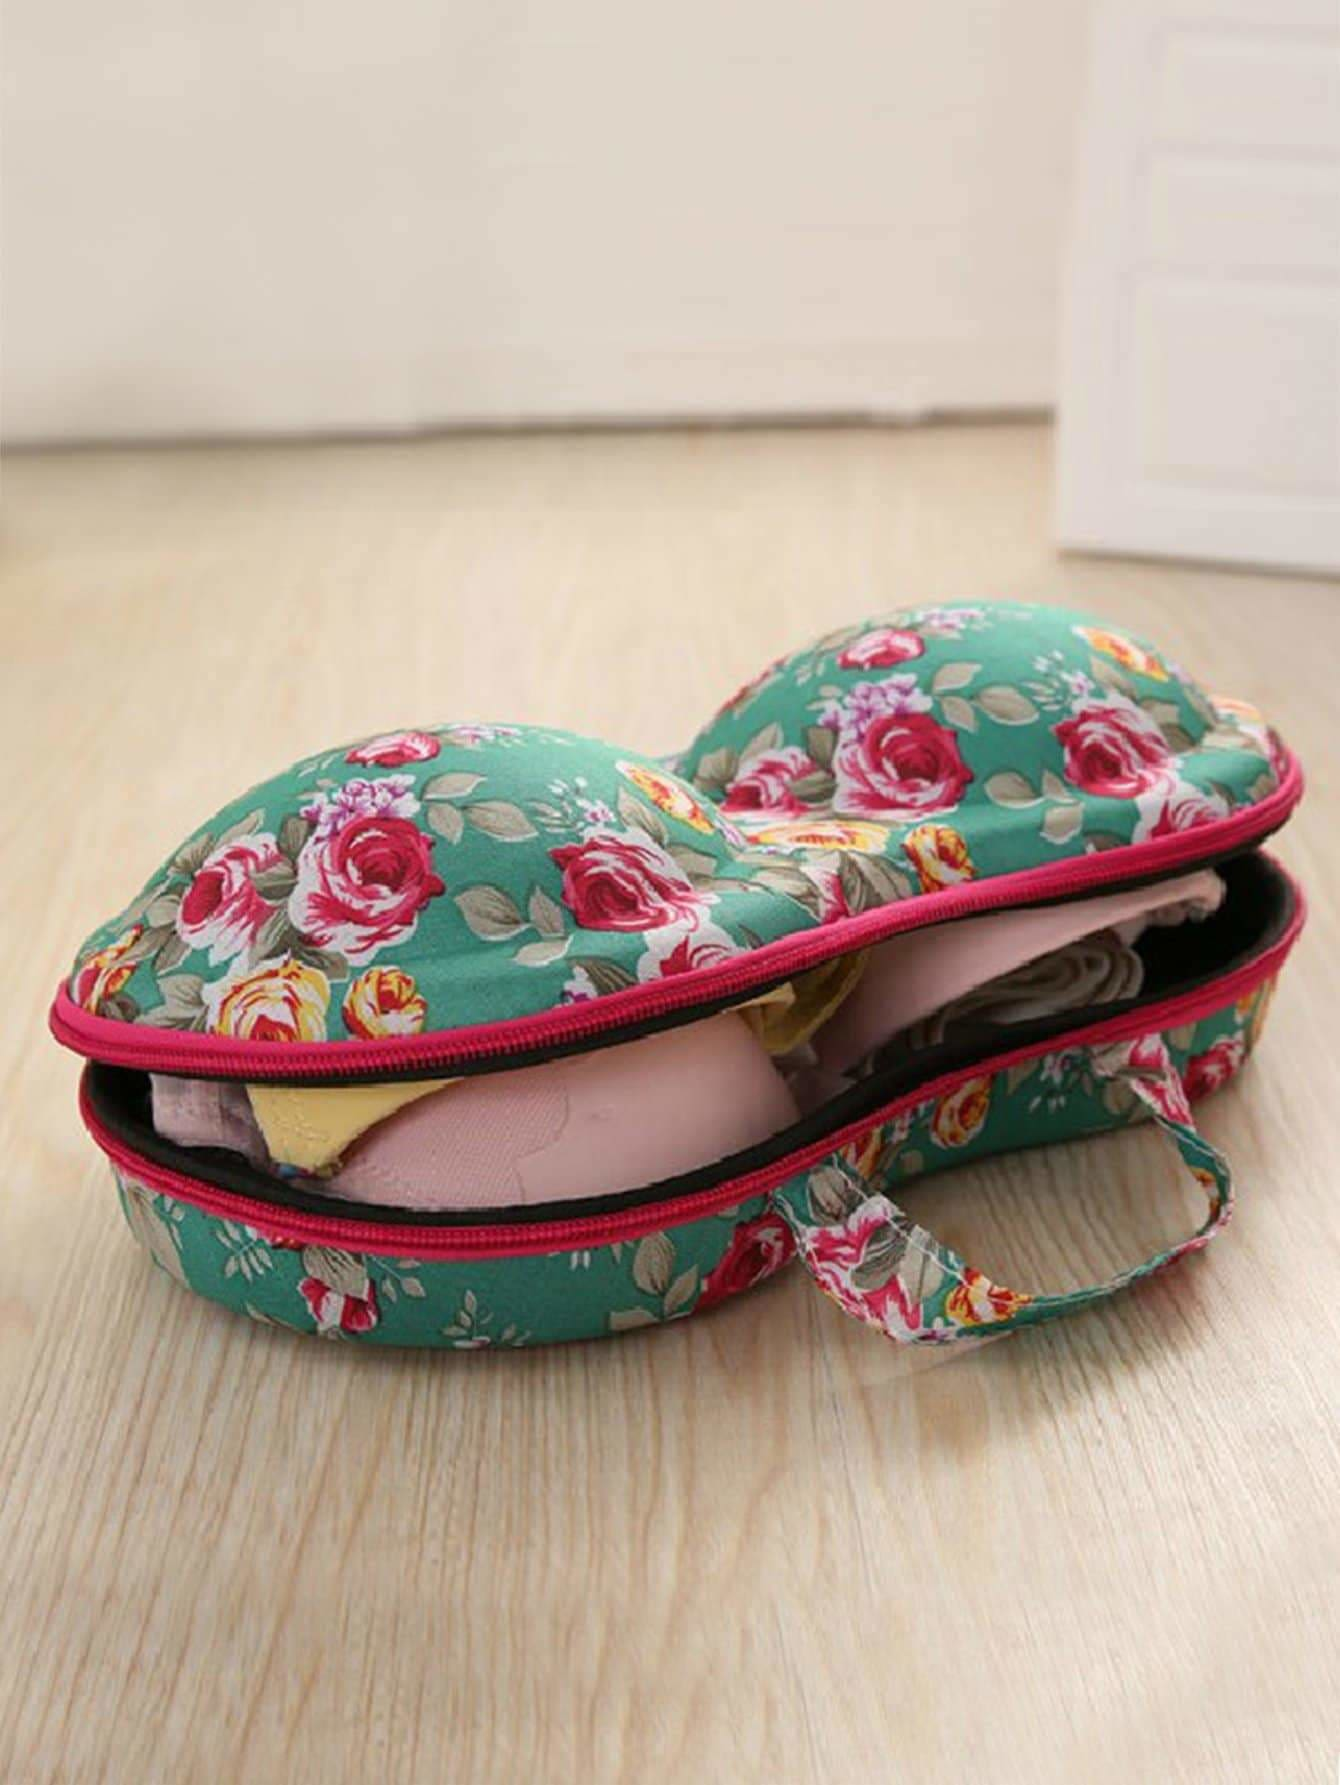 Floral Pattern Bra Zipper Storage Box - Storage & Organization